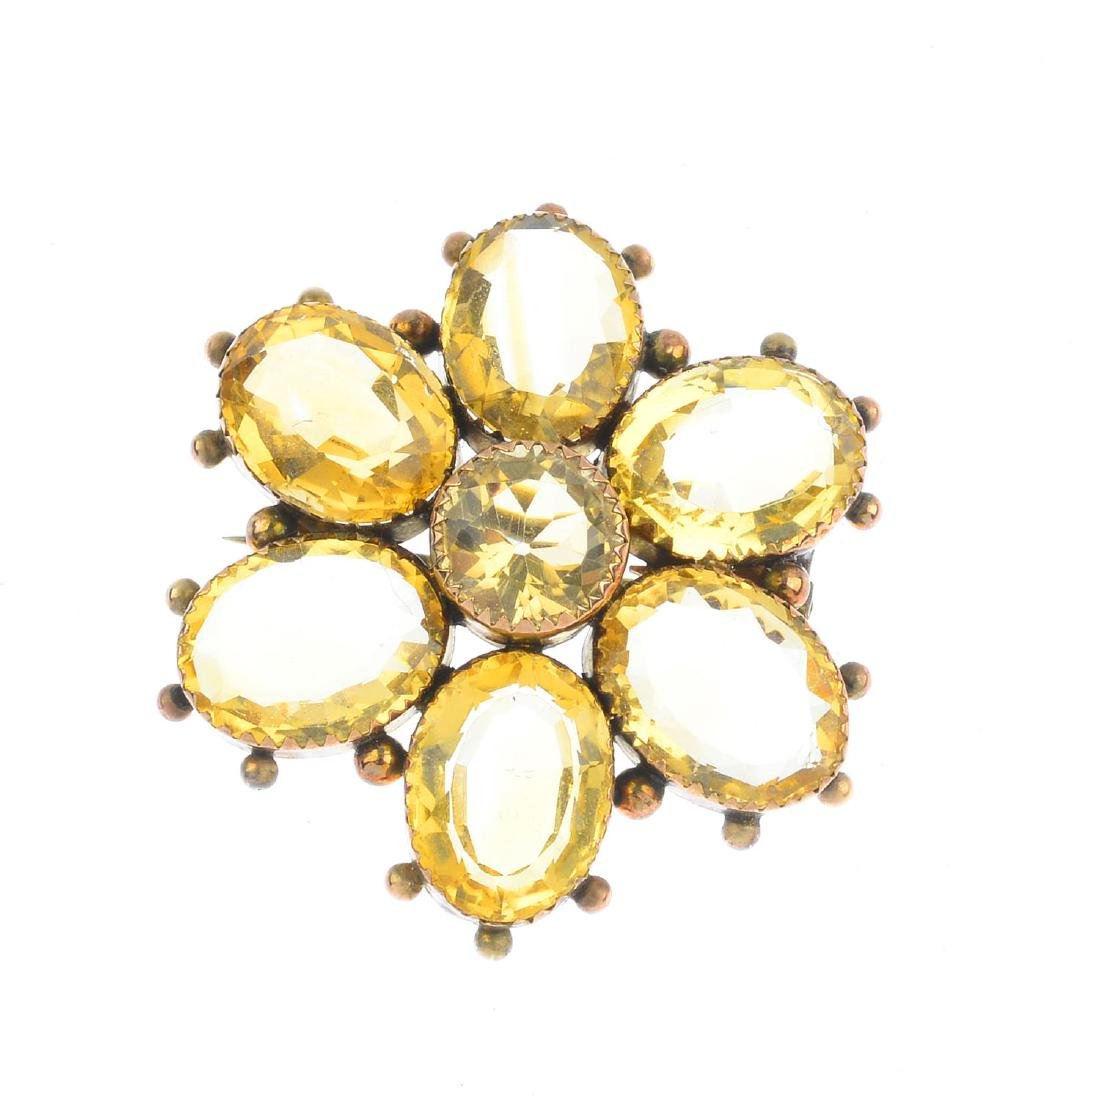 A late Victorian citrine brooch. The circular-shape